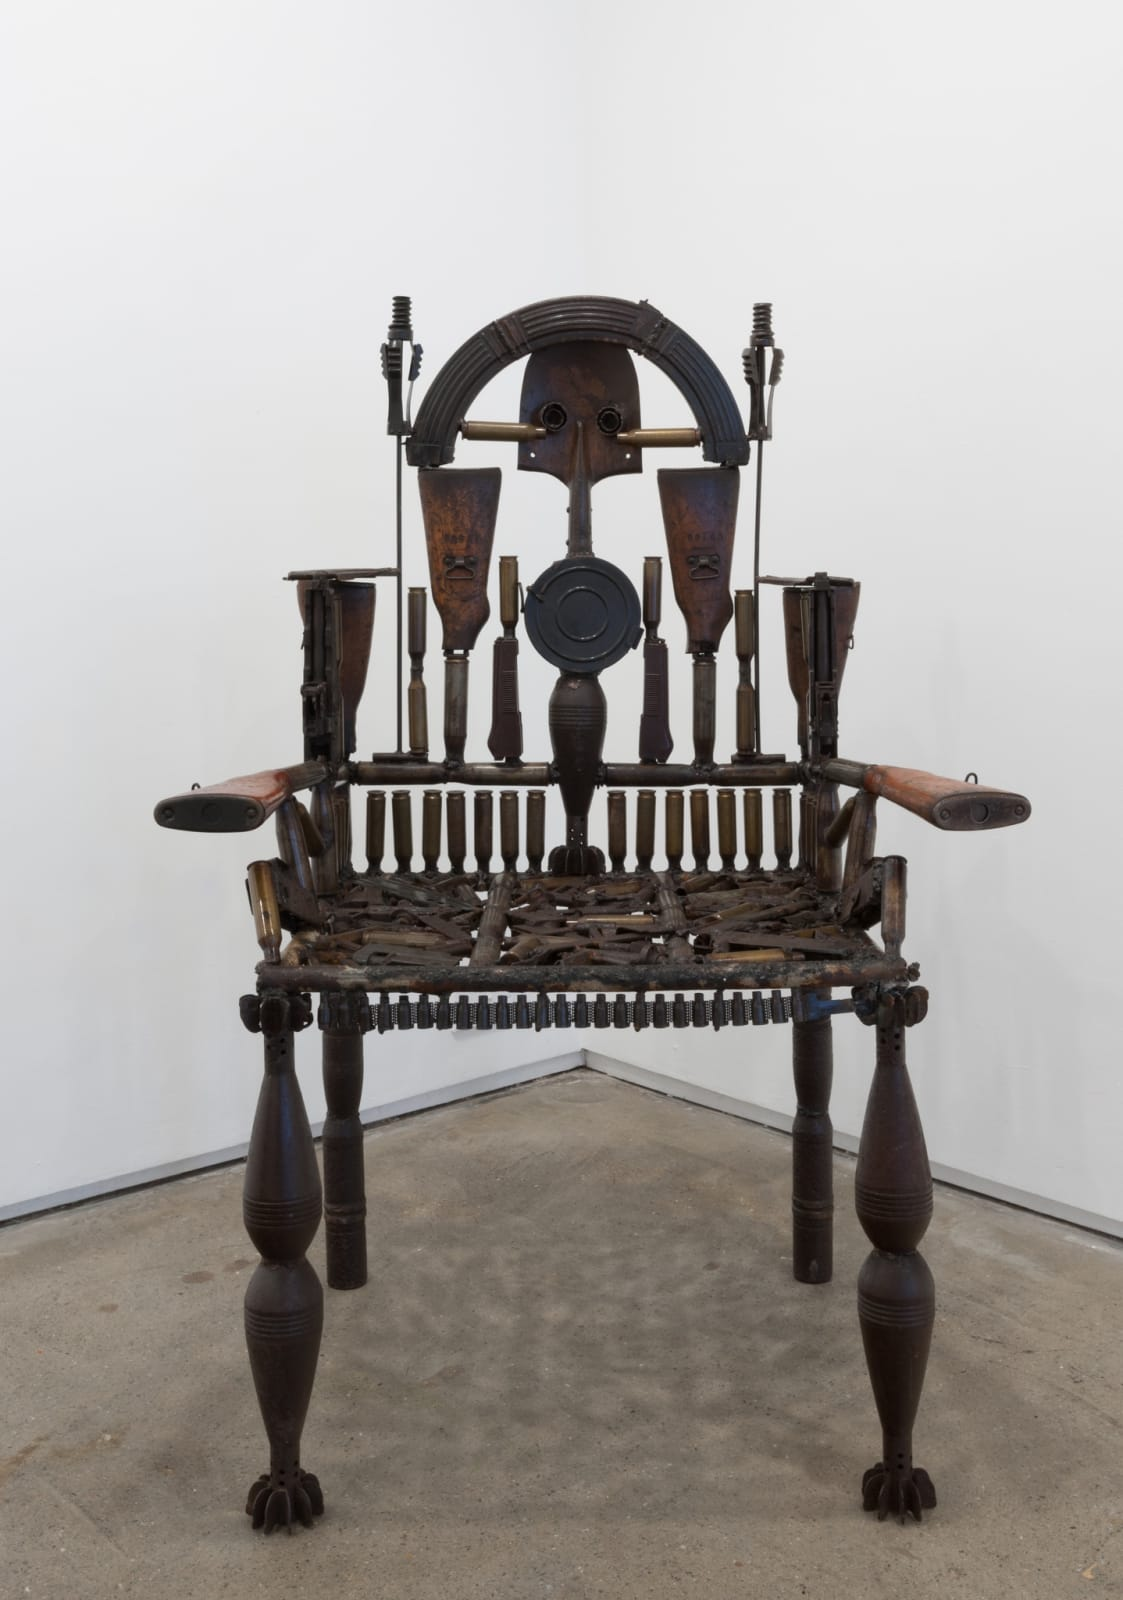 Goncalo Mabunda  Untitled Throne, 2015  Decommissioned arms  136 x 92 x 64 cm